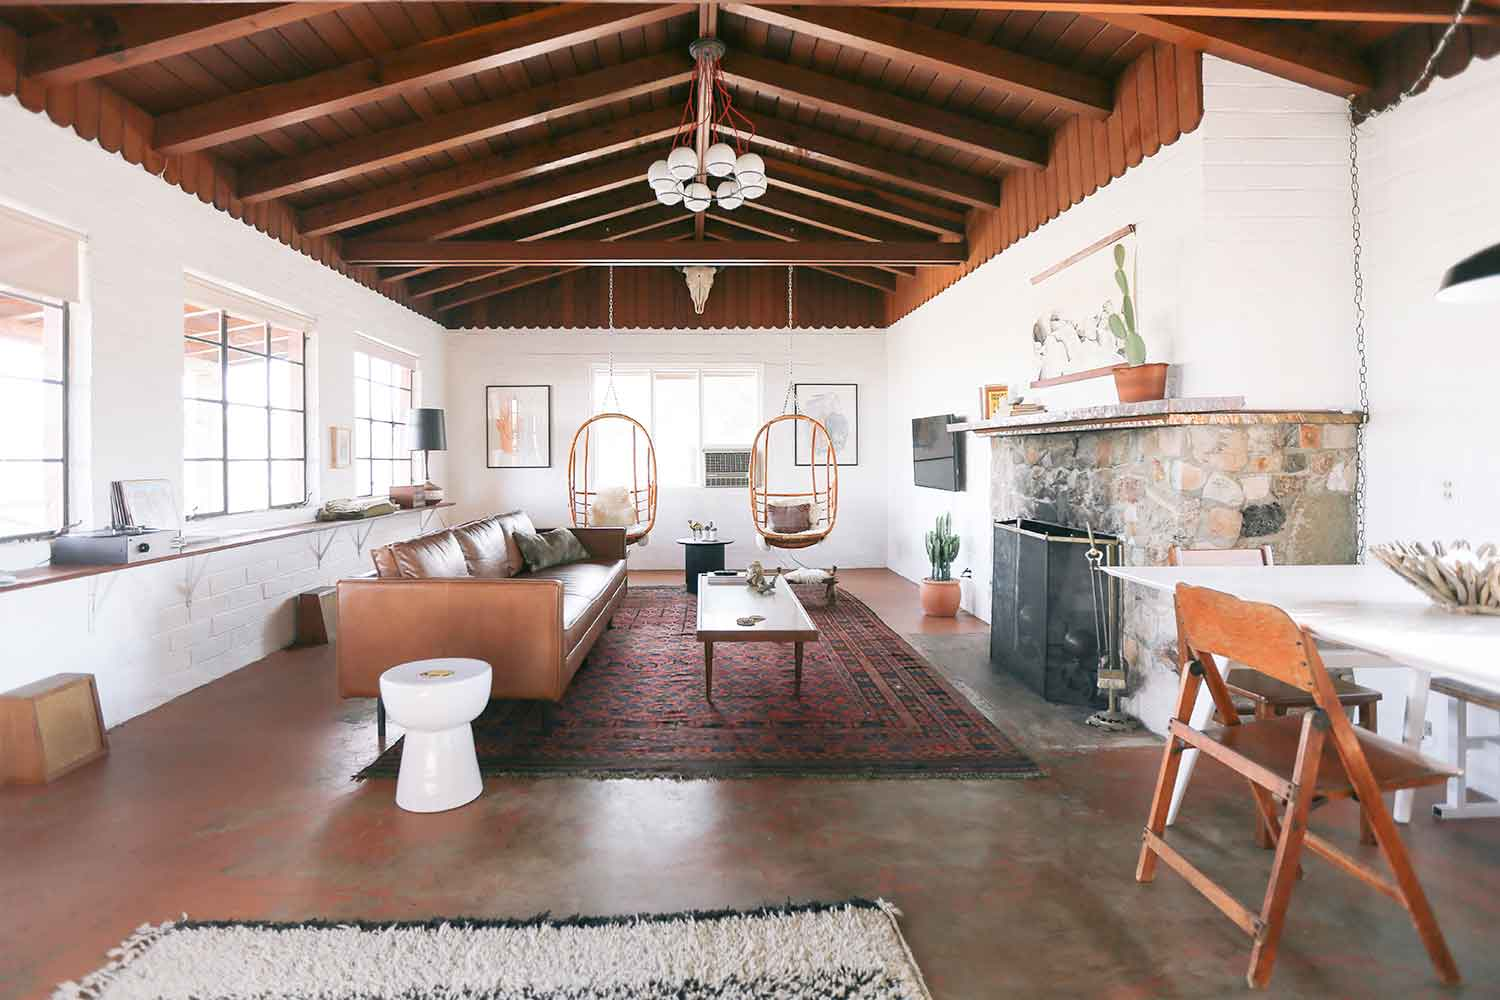 The living room at the Joshua Tree House. [Image courtesy of the Joshua Tree House]